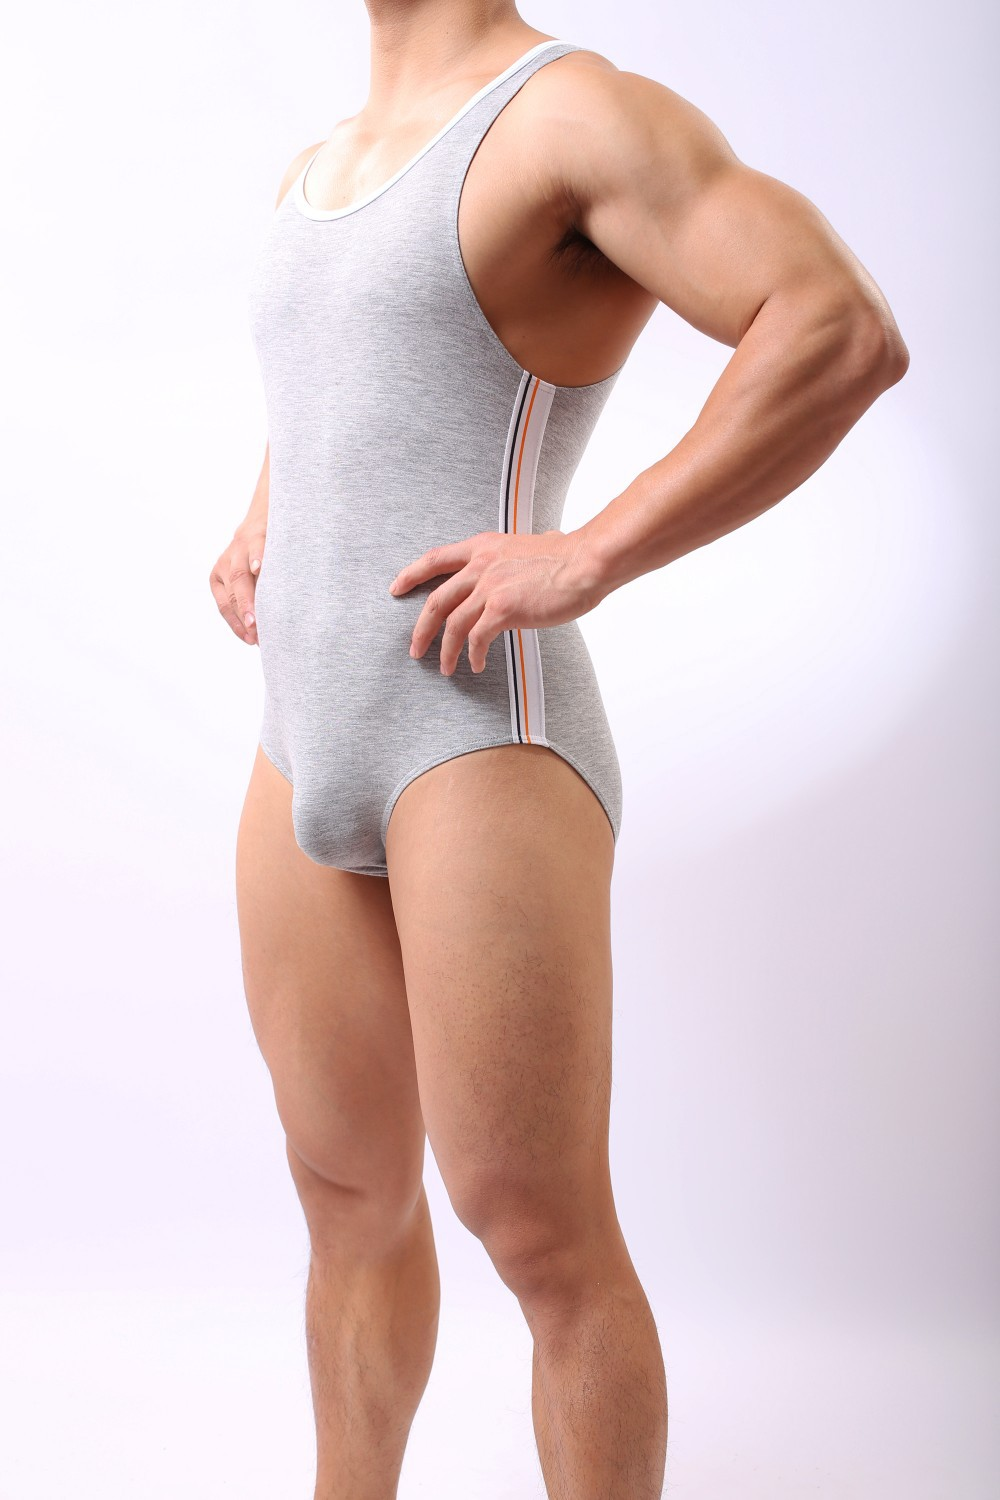 Модный Brand Man Fitness Bodybuilding Bodysuit/Gay Slim Body Shaper Underwear/Training Shapewear